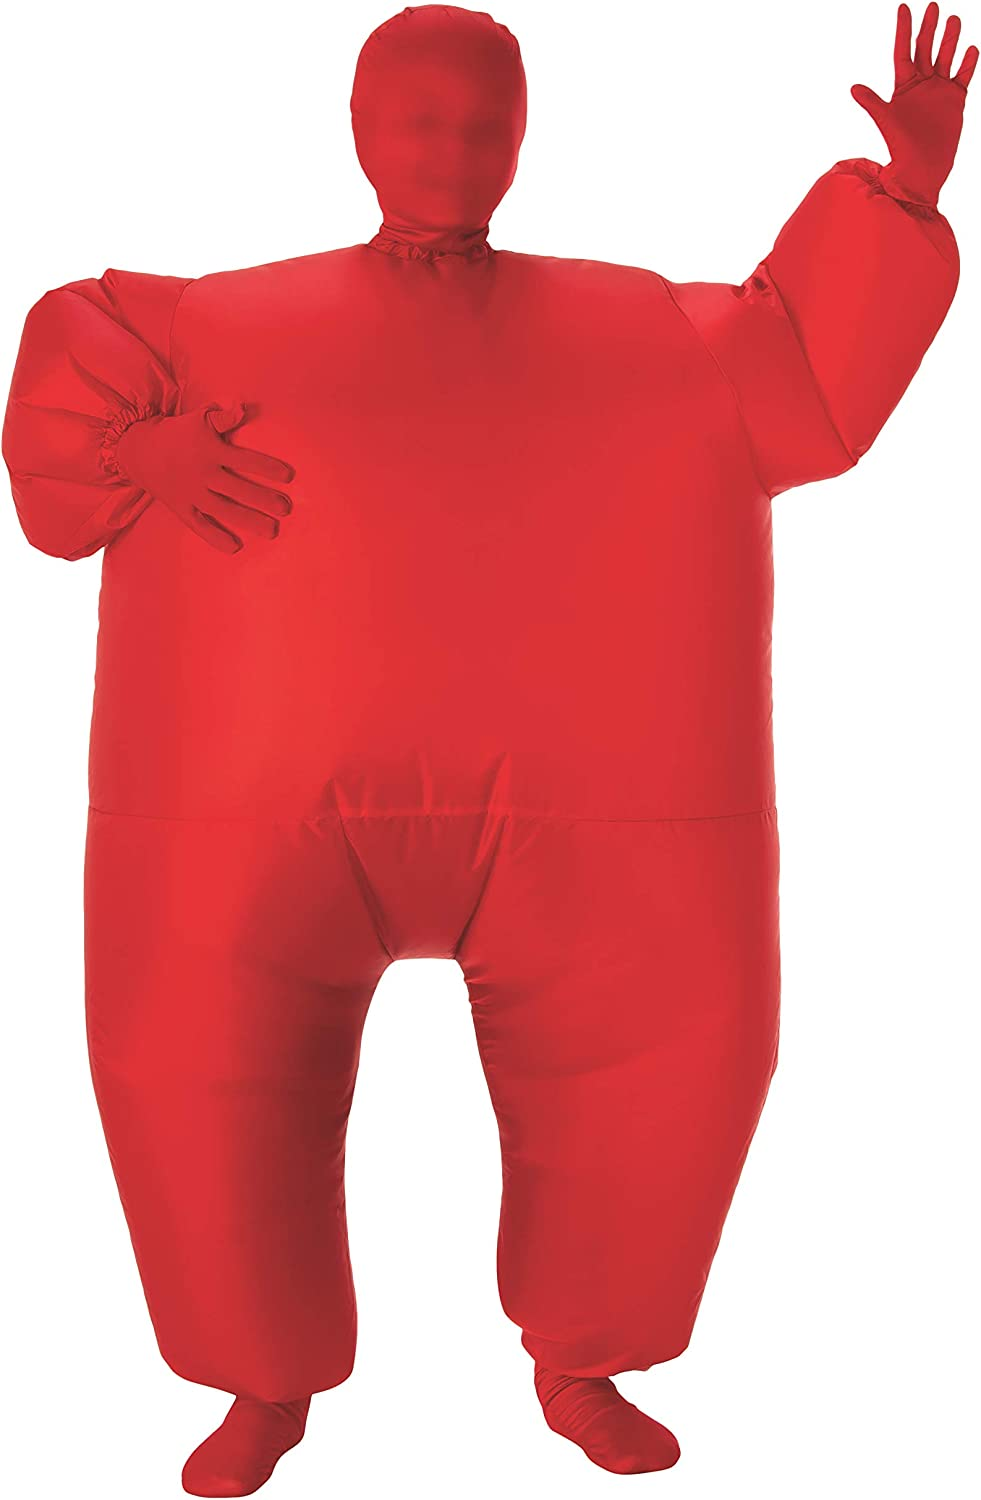 Blue One Size Rubies Costume Inflatable Full Body Suit Costume